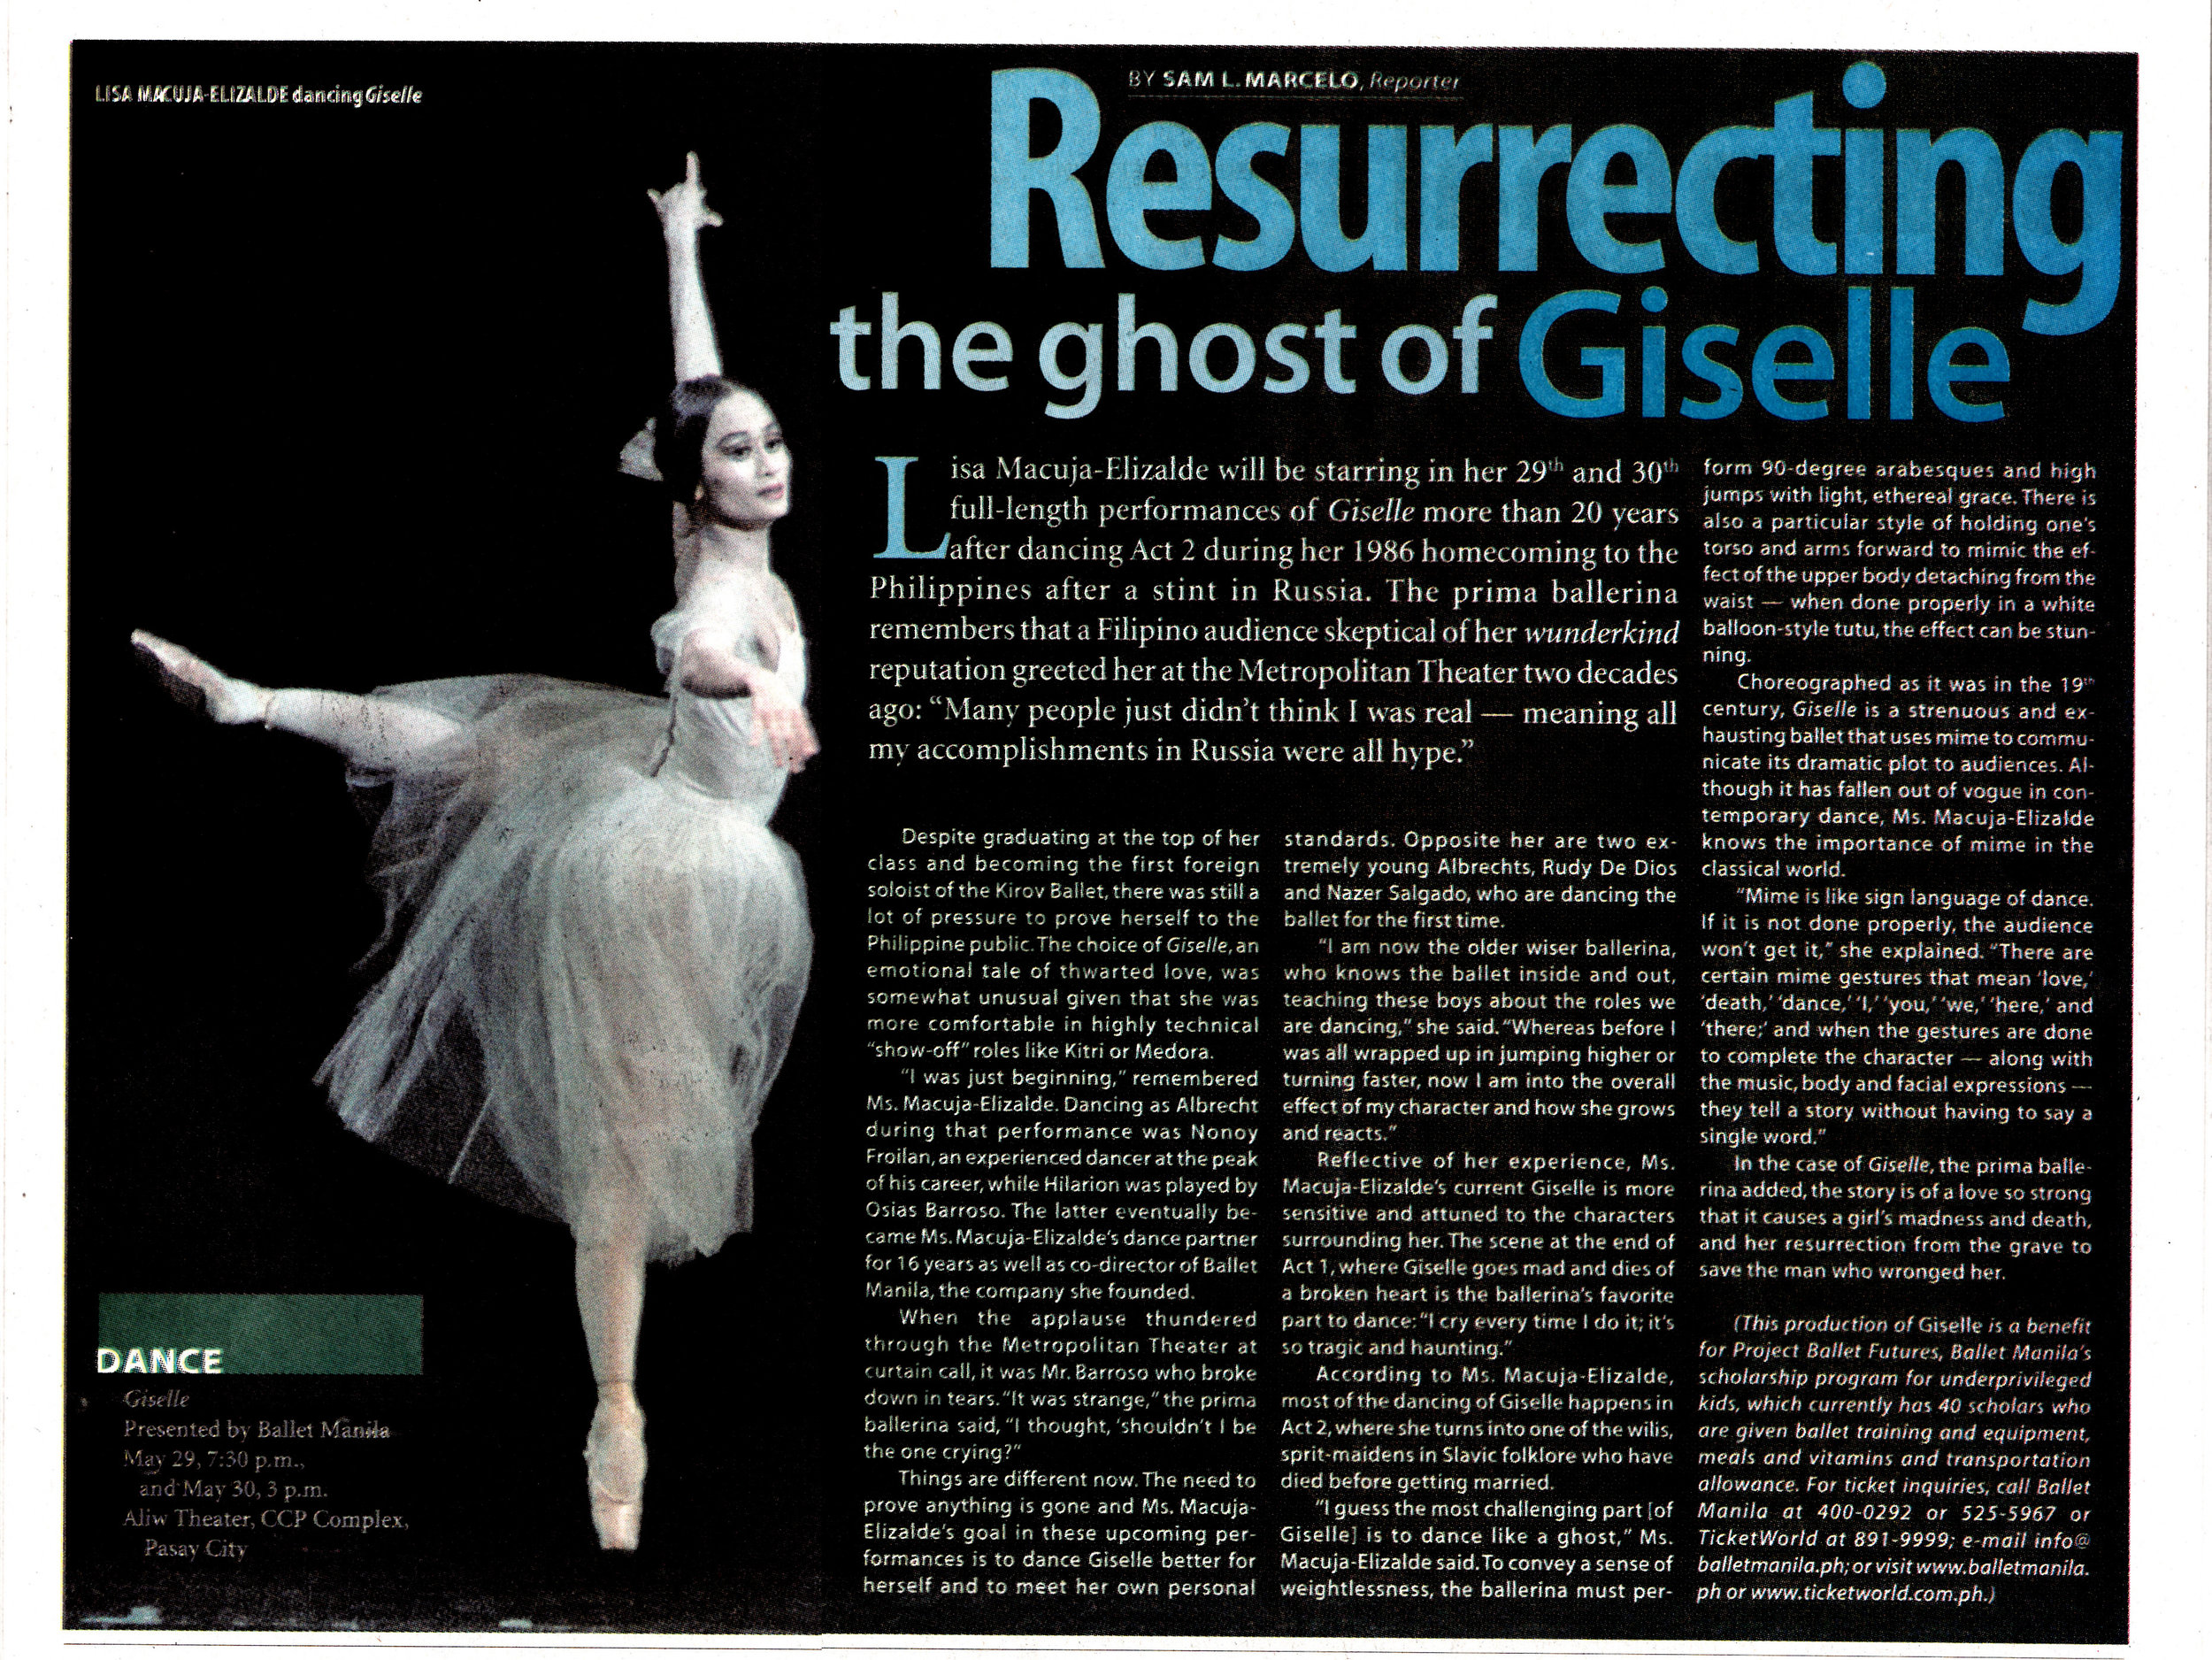 A story in BusinessWorld features an interview with Lisa Macuja-Elizalde as she takes on the title role in Giselle anew, this time for her 25th anniversary as a ballerina. From the Ballet Manila Archives collection